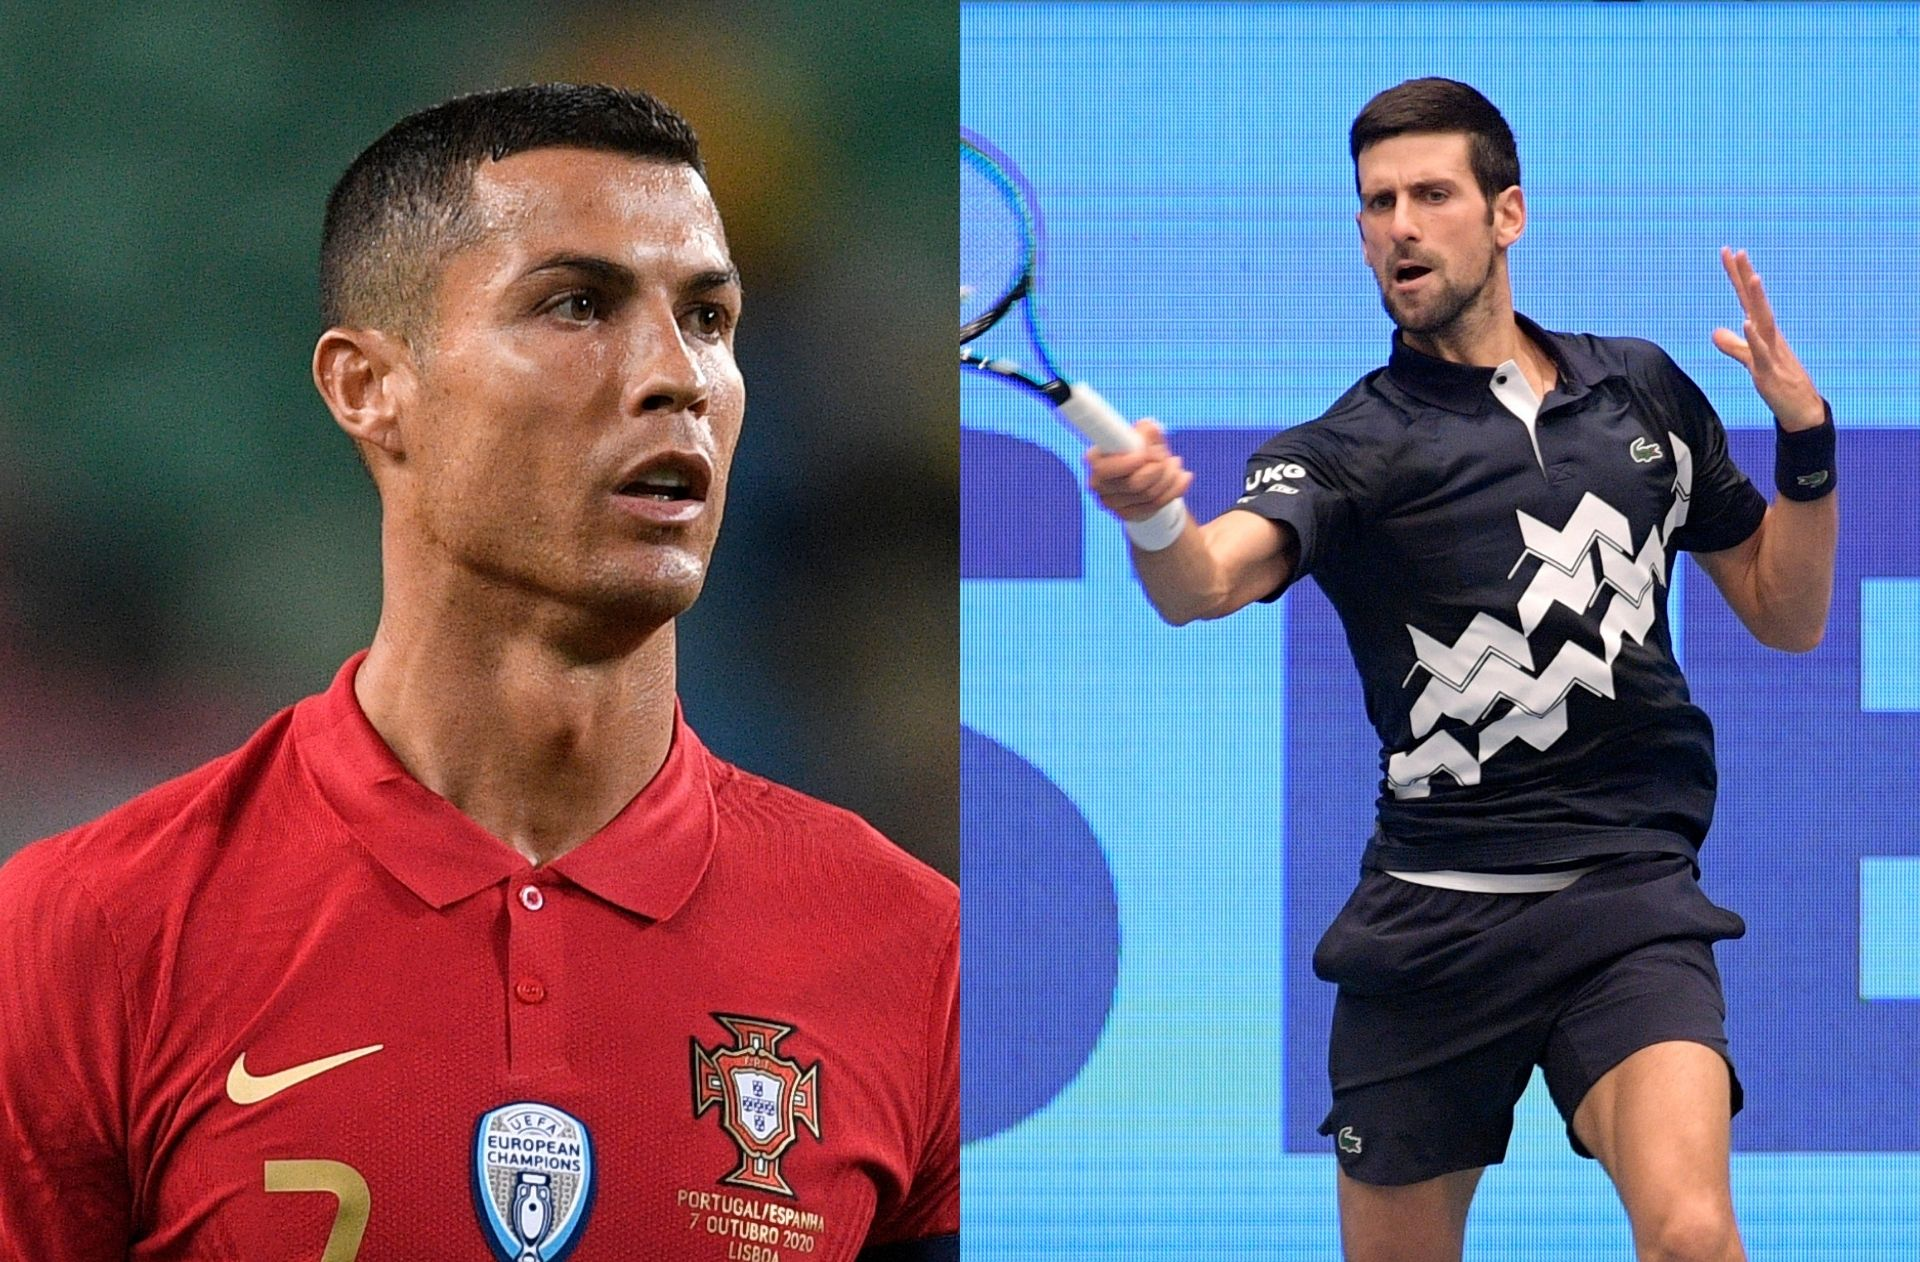 Cristiano Ronaldo of Portugal, Novak Djokovic